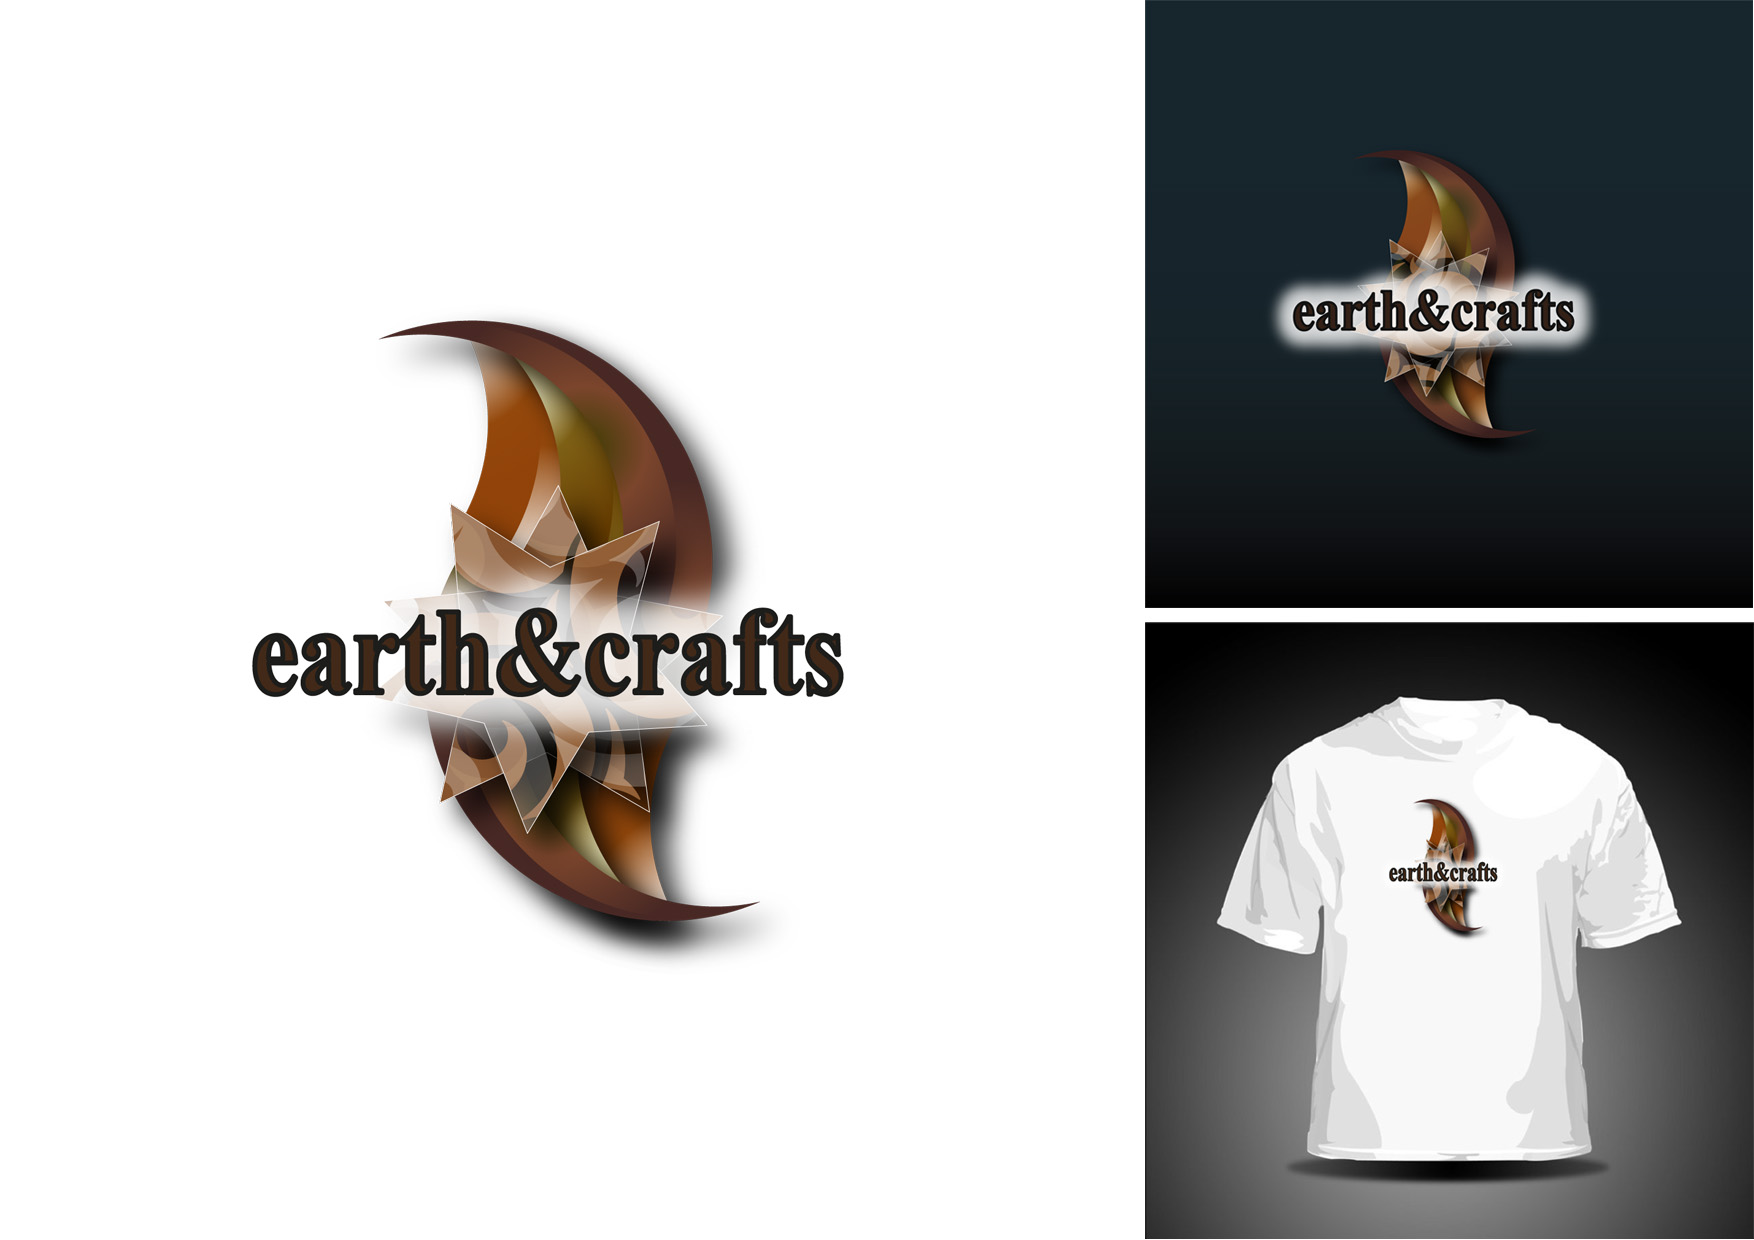 15 predlog logo EARTH&CRAFTS stefan petrovic stech010@gmail.com